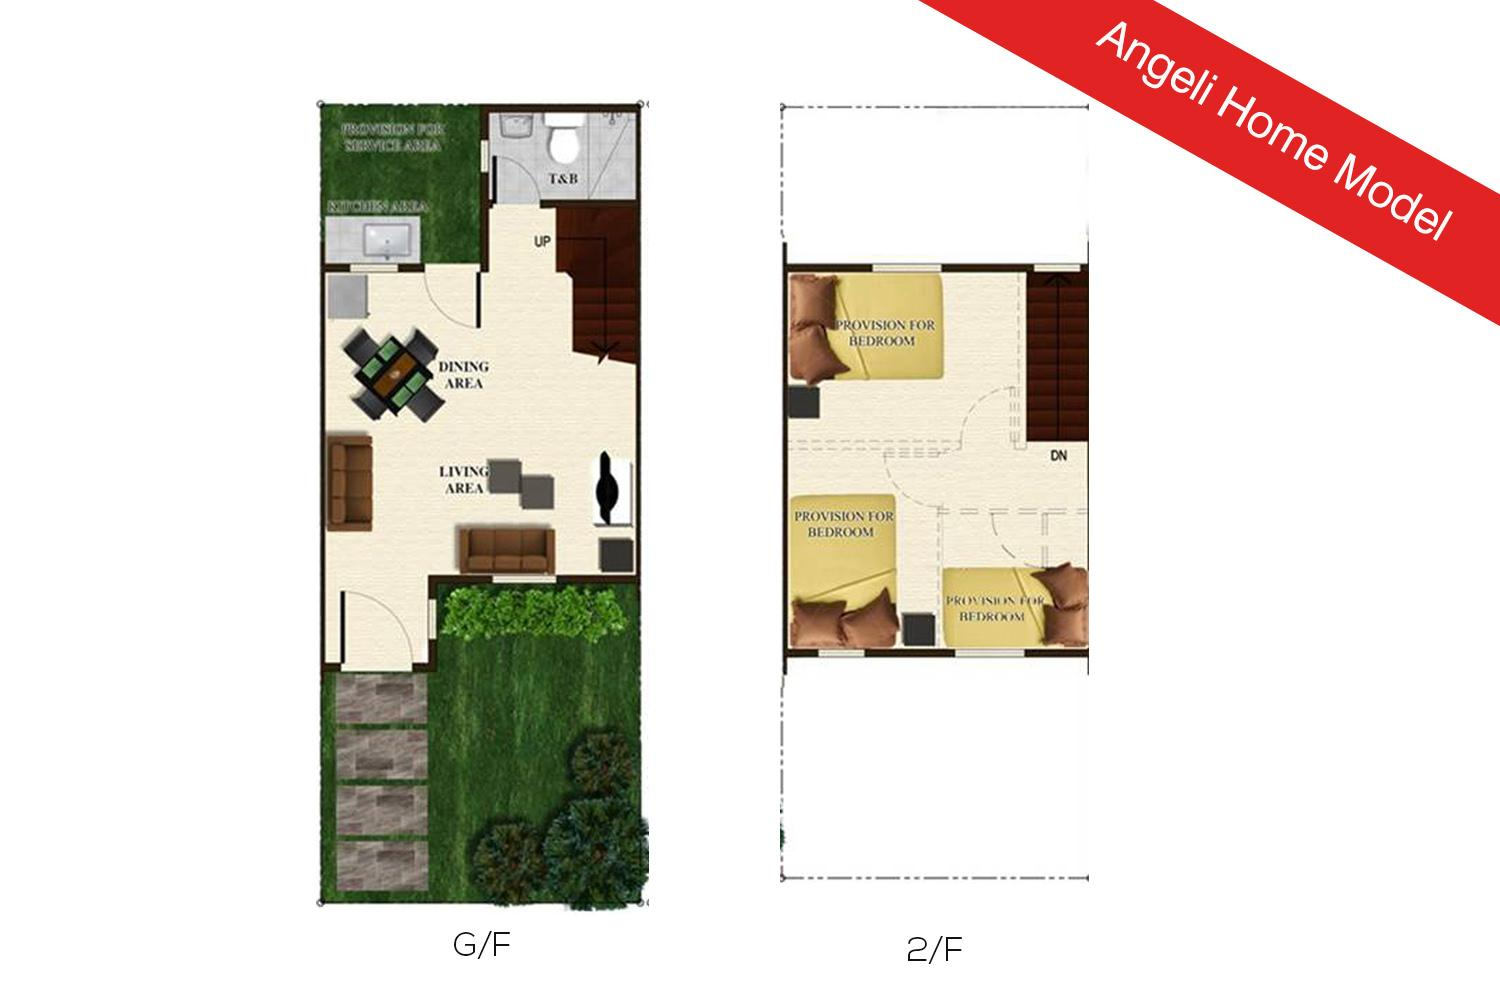 Angeli Floor Plan